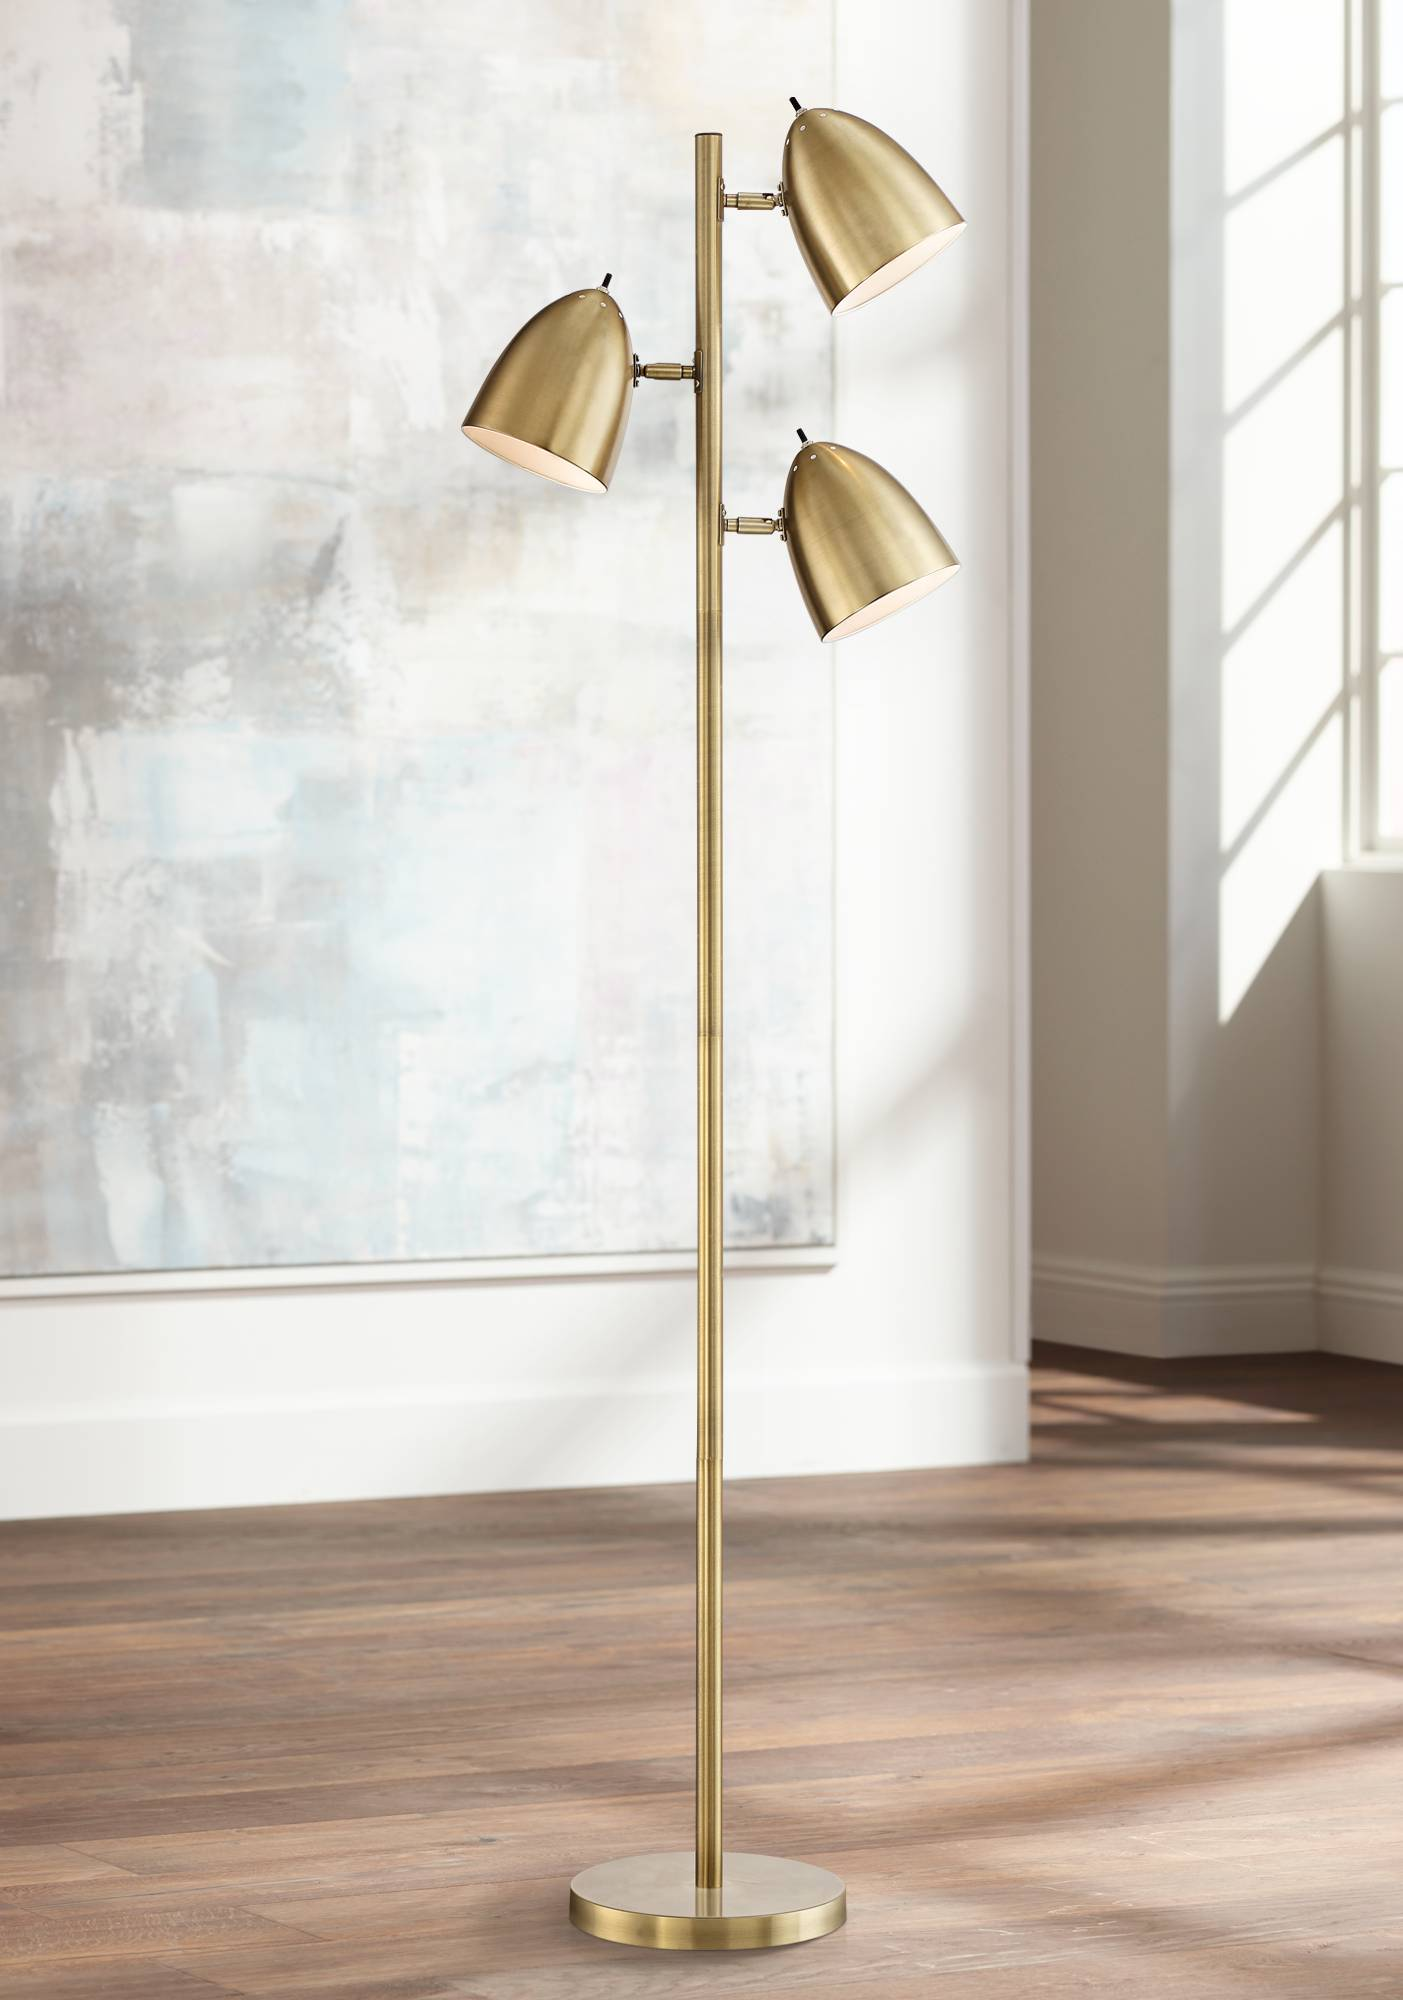 7f4f1ceffd942 Details about Mid Century Modern Floor Lamp 3-Light Tree Adjustable Aged  Brass For Living Room